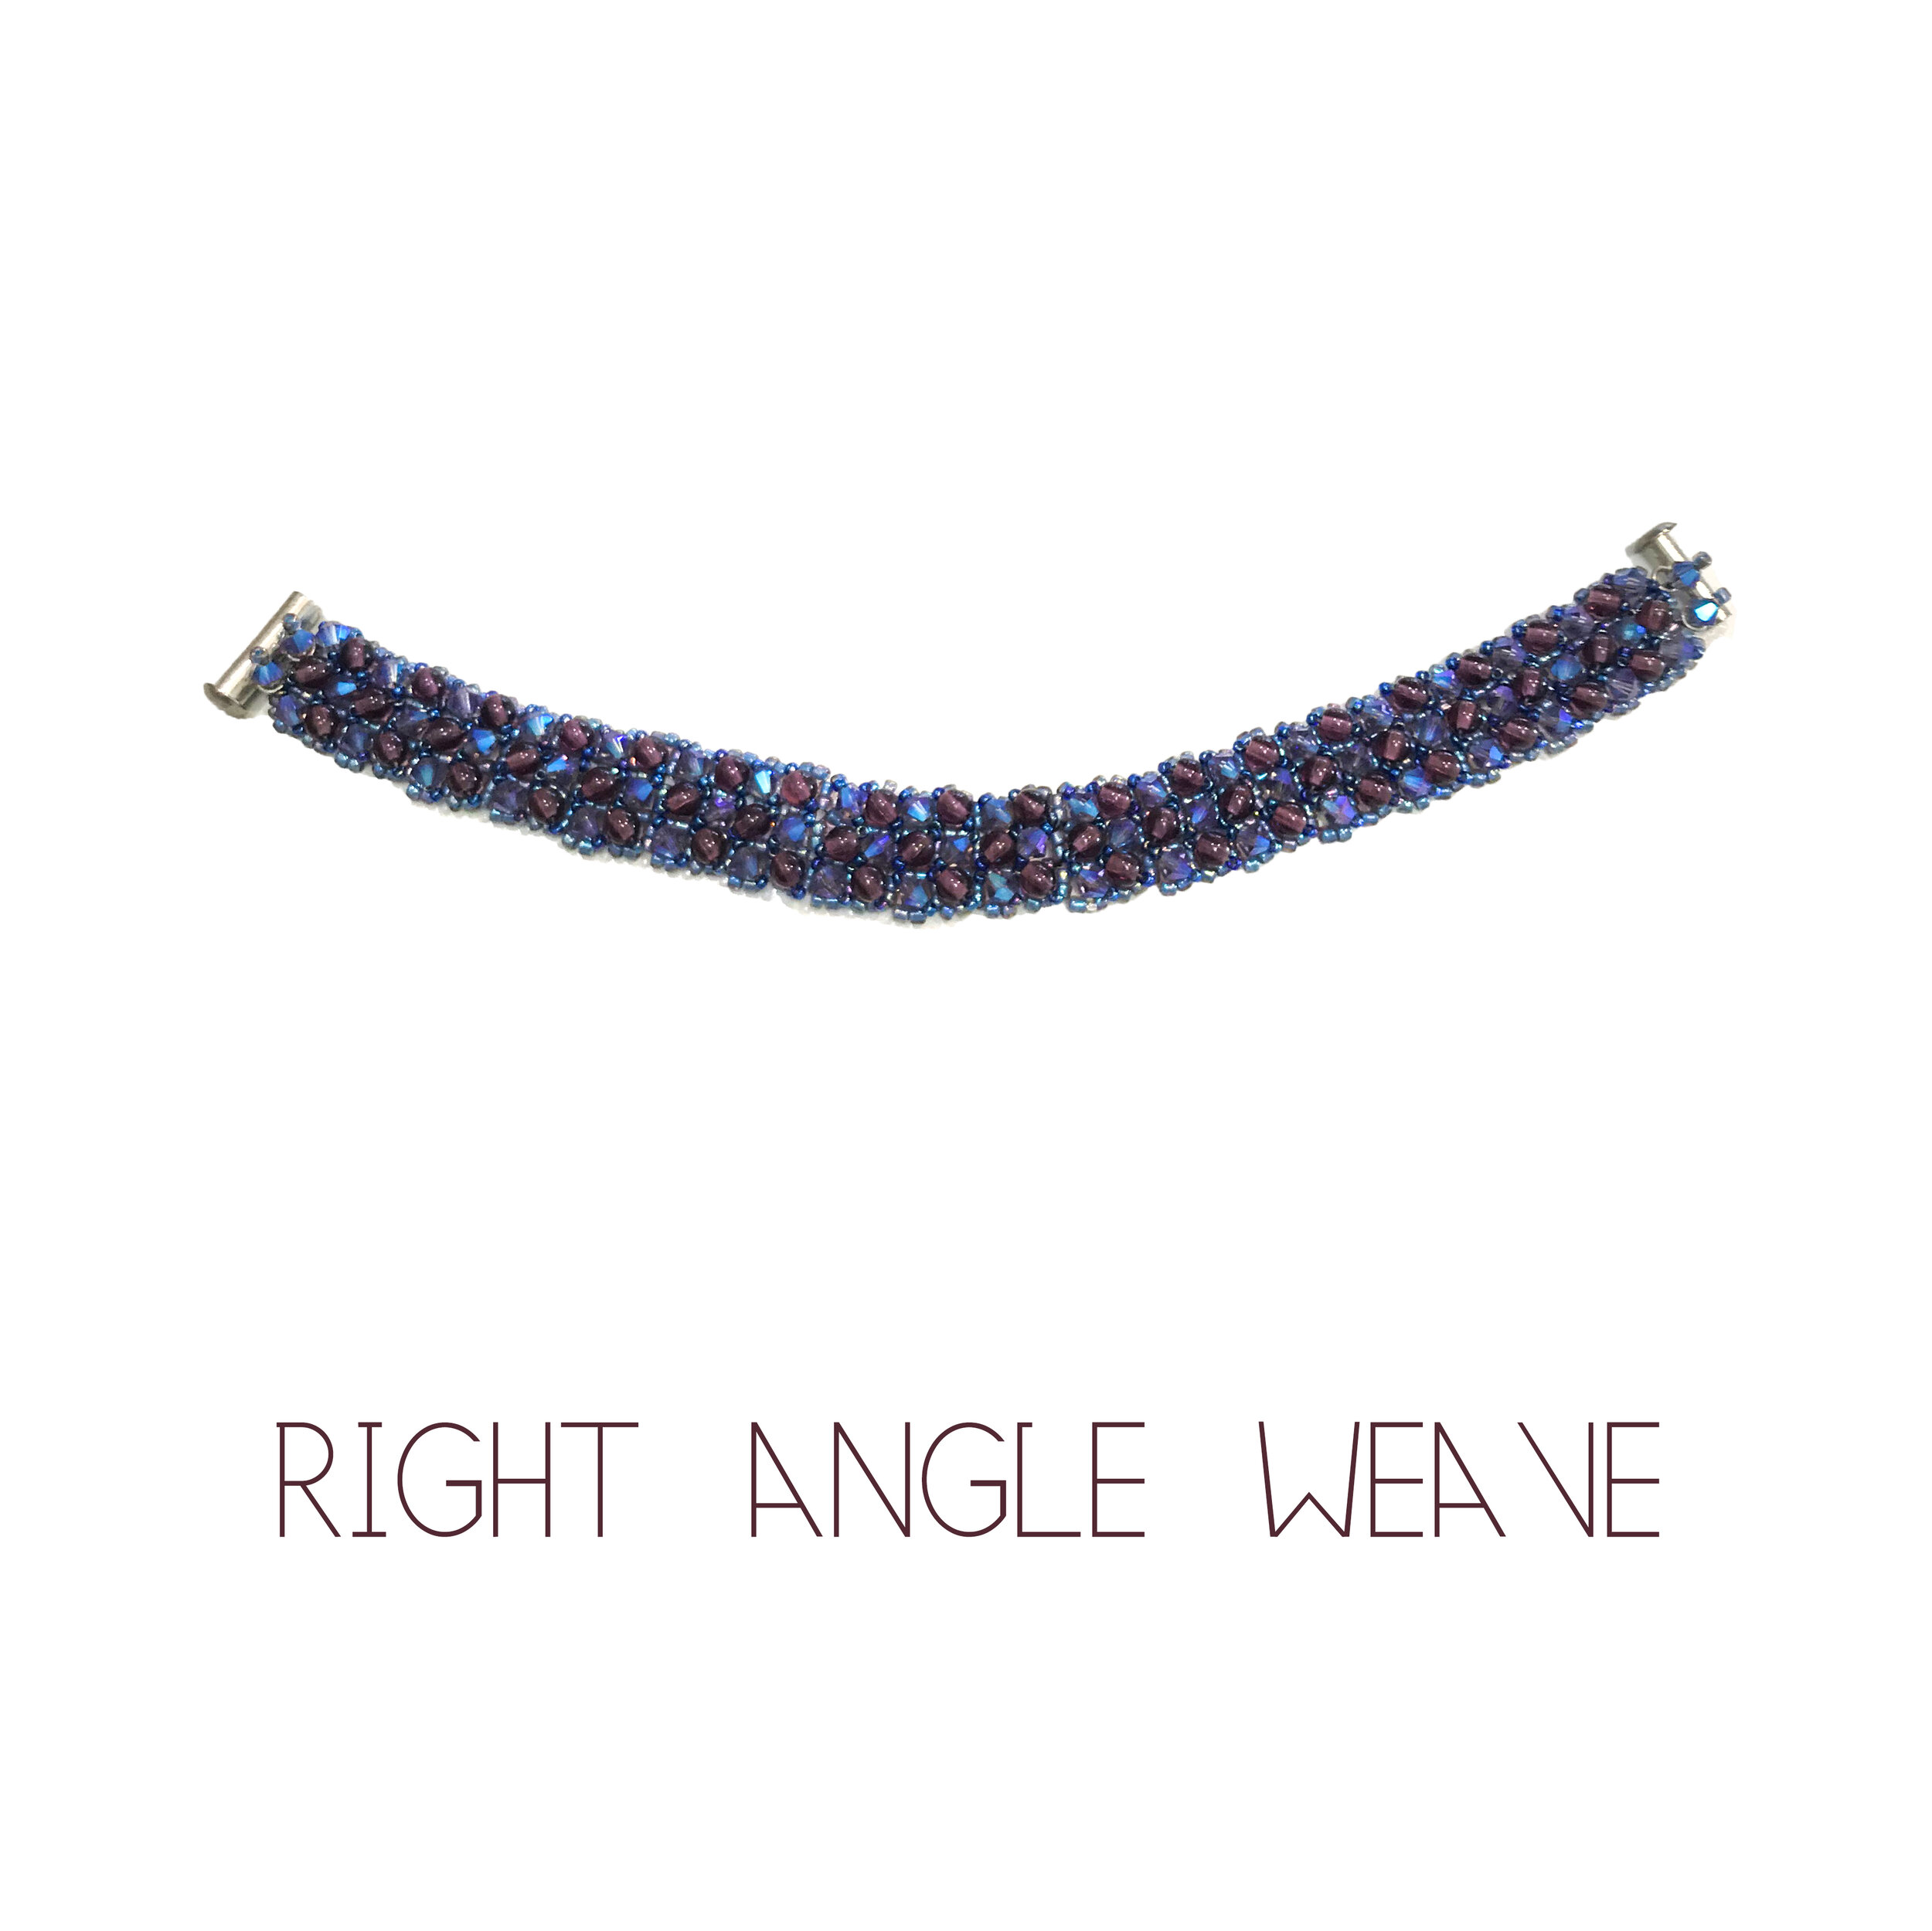 right_angle_weave.jpg